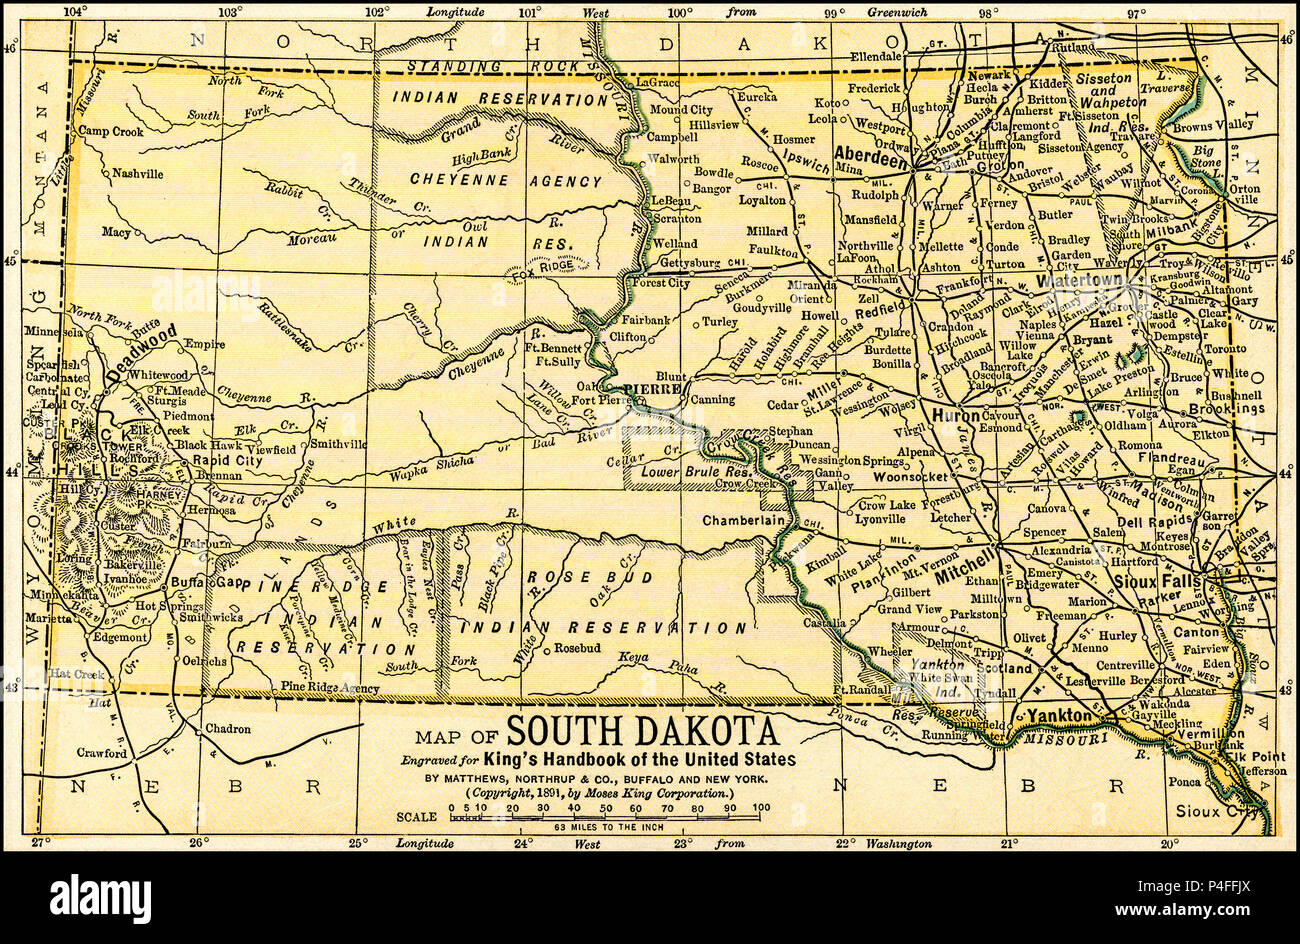 South Dakota Antique Map 1891 Antique Map Of South Dakota From An